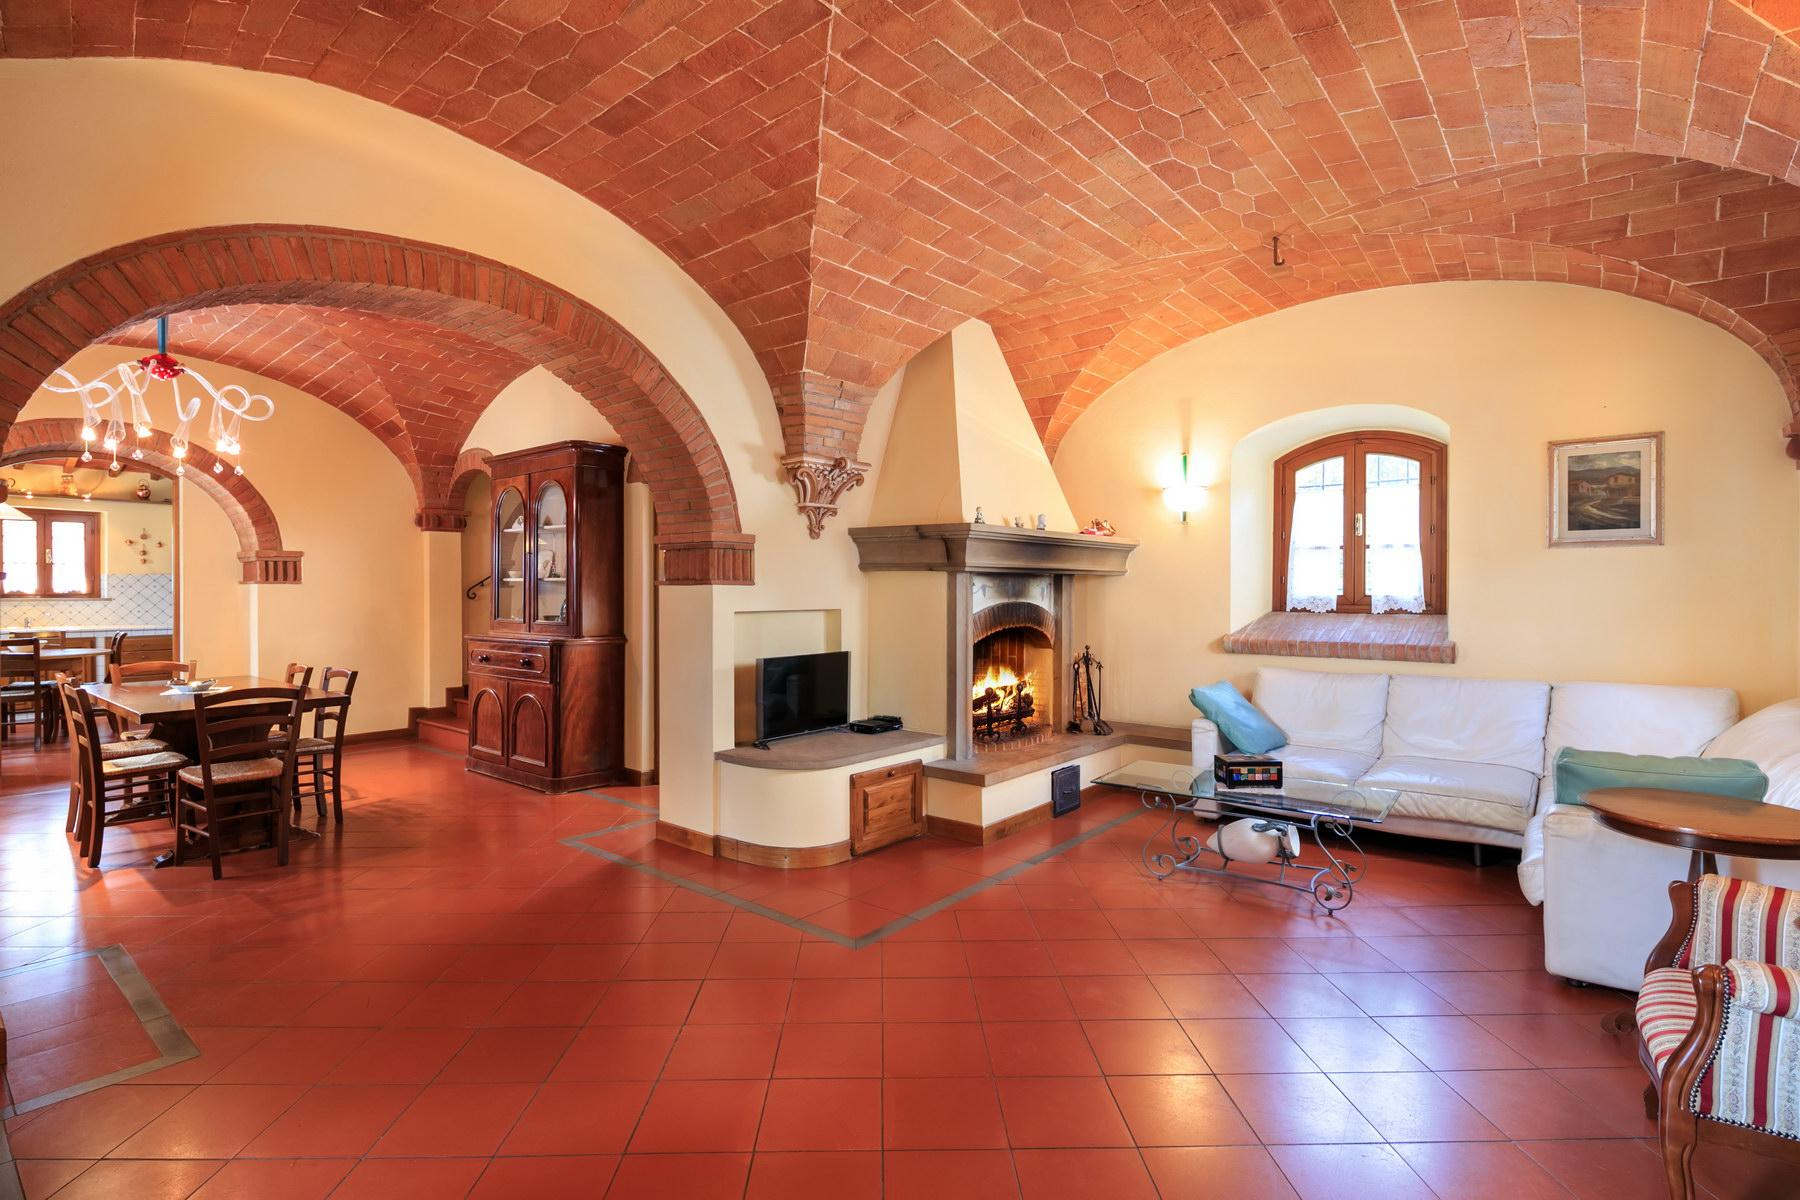 Wonderful countryhouse in the tuscan countryside - 6